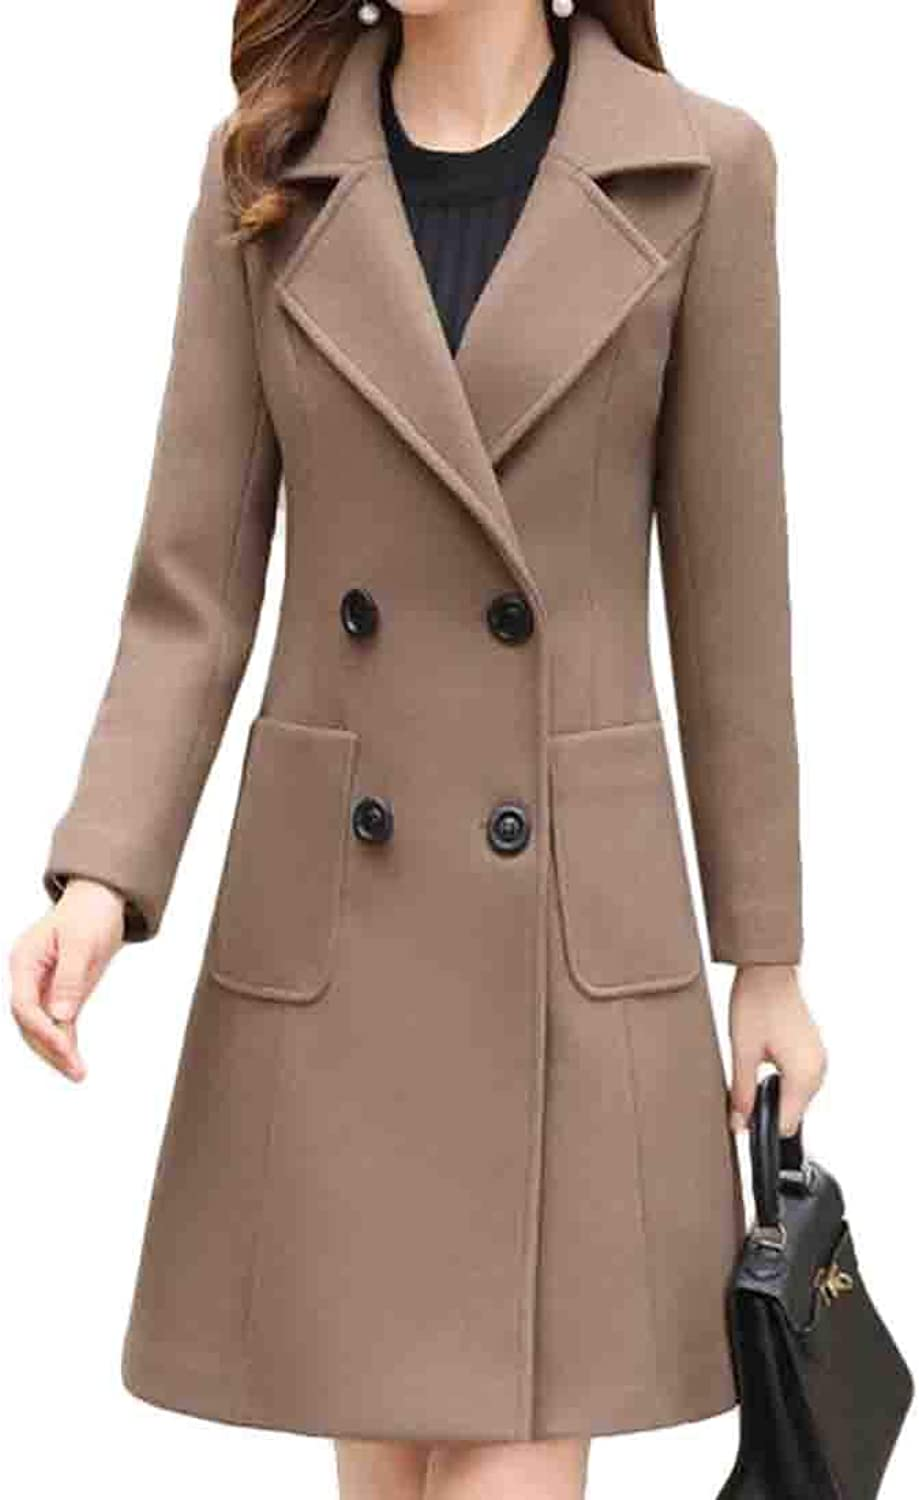 JXG Women Elegant Overcoat Double Breasted Cashmere MidLong Thick Outerwear